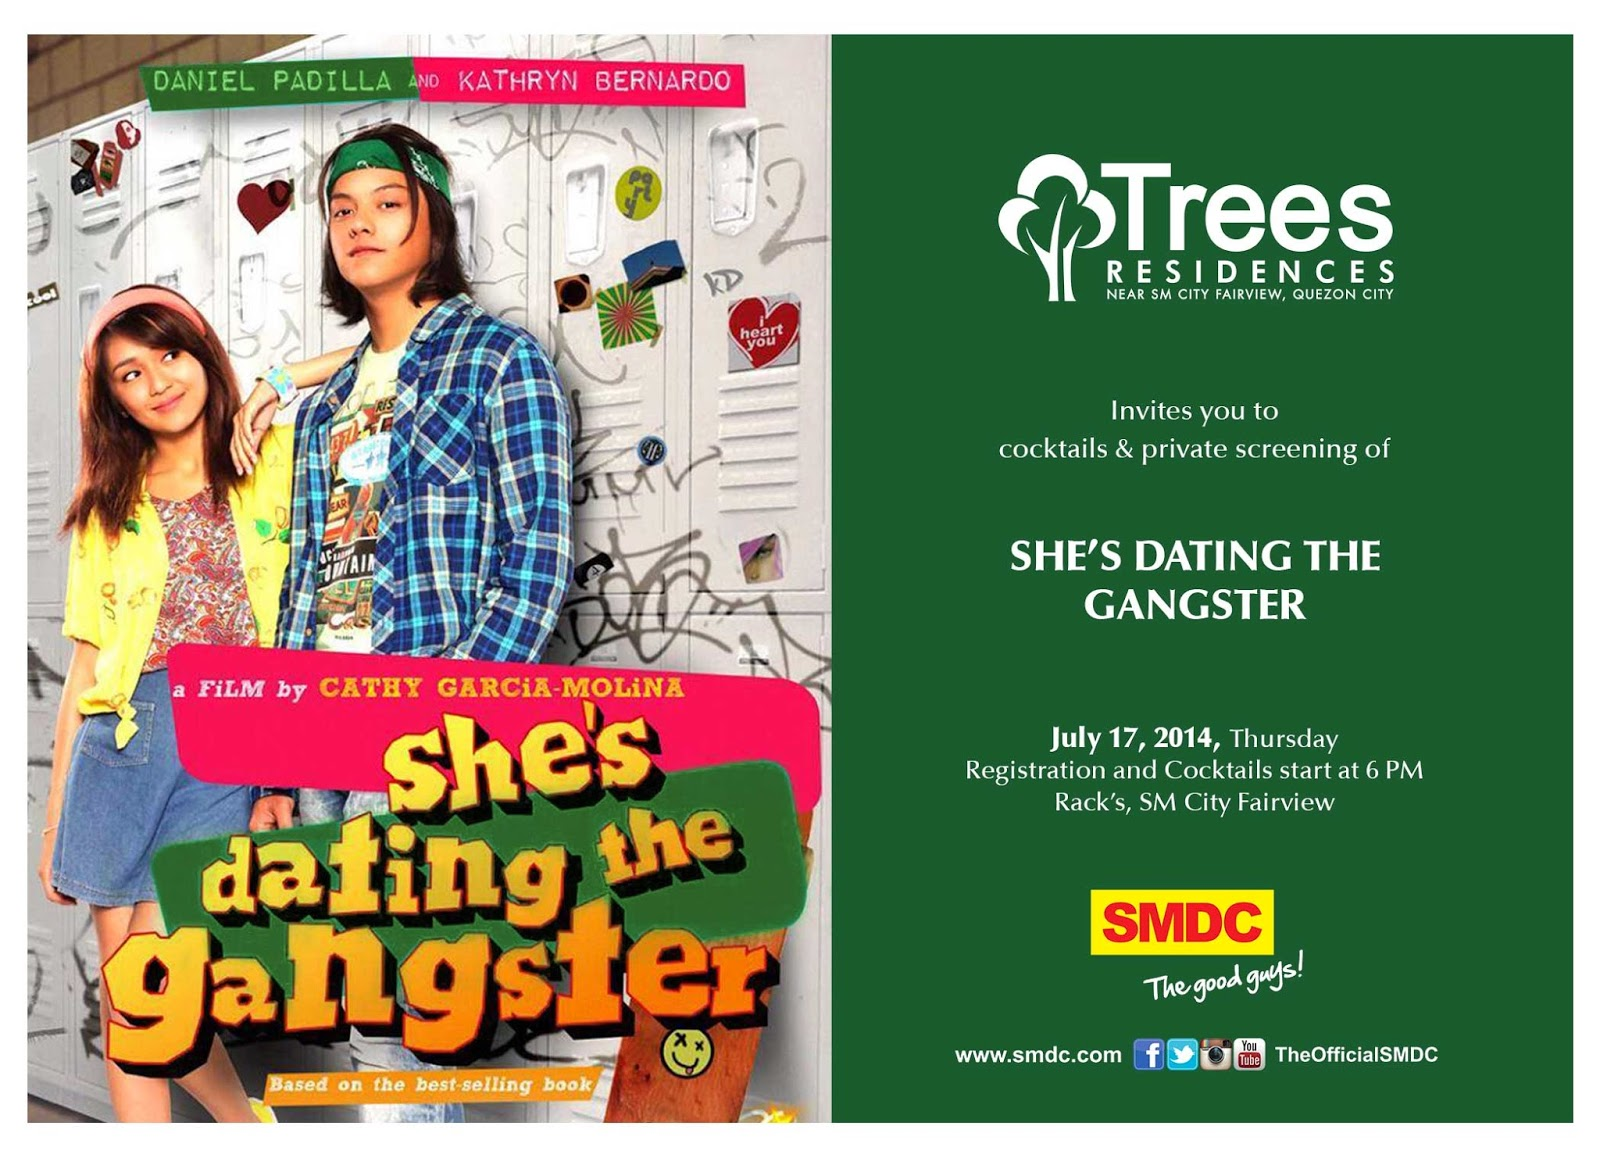 Join us for cocktails and a private screening of She's Dating the Gangster this July 17, 2014 at Rack's, SM City Fairview.